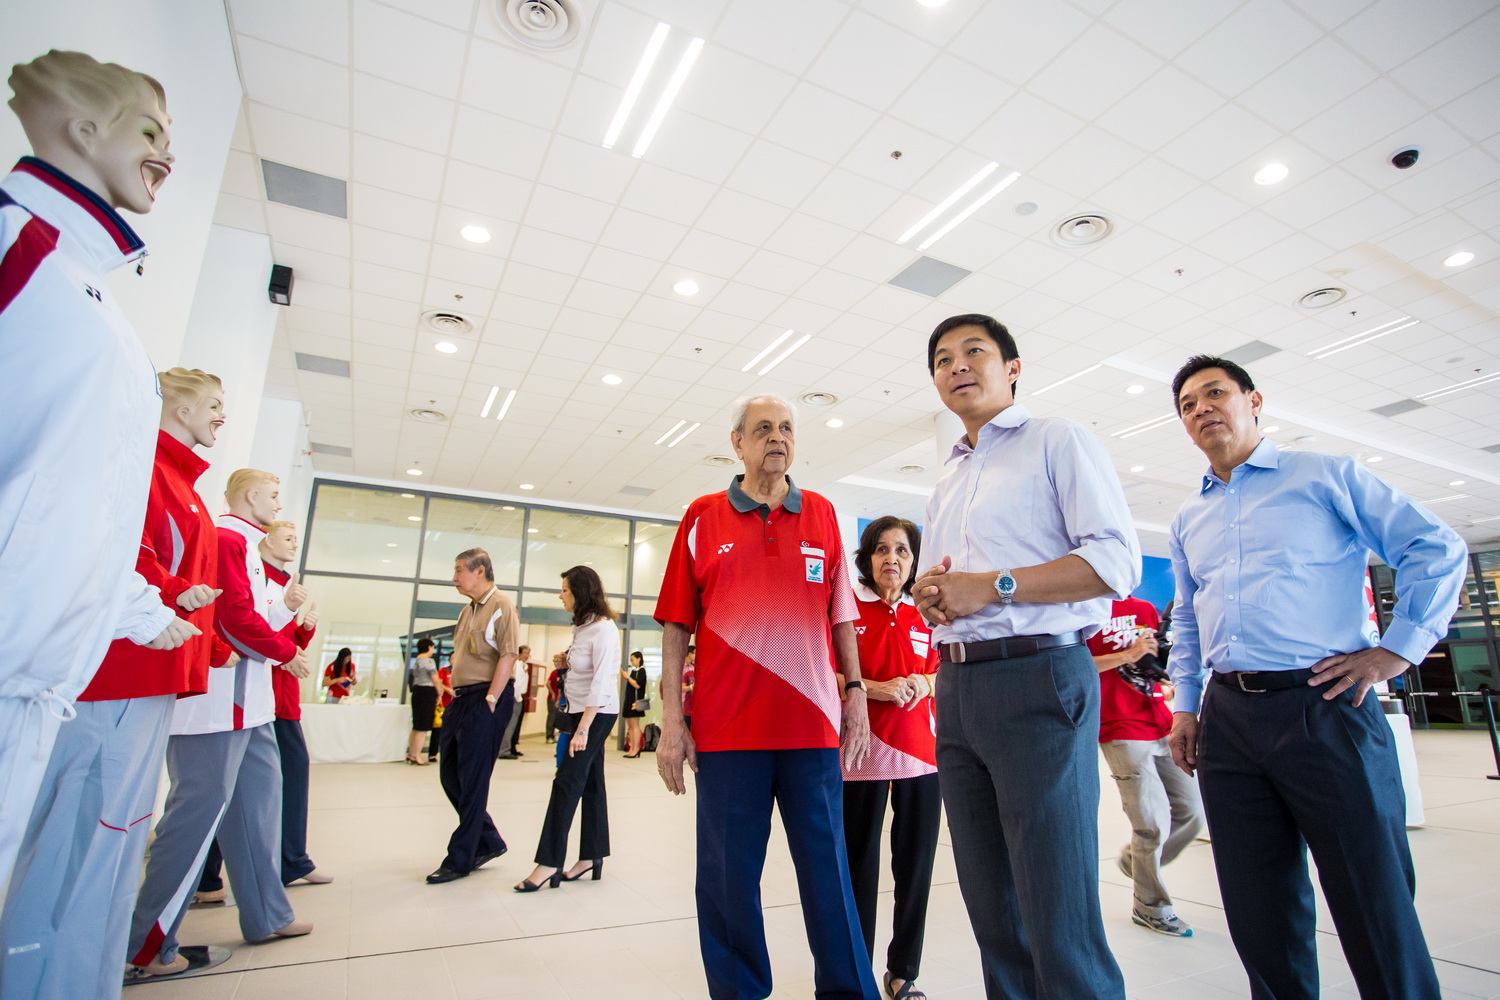 The deal was signed by SNOC secretary general Chris Chan along with Sunrise head of group business development Harinder Garga at the Singapore Sports Hub ©SNOC